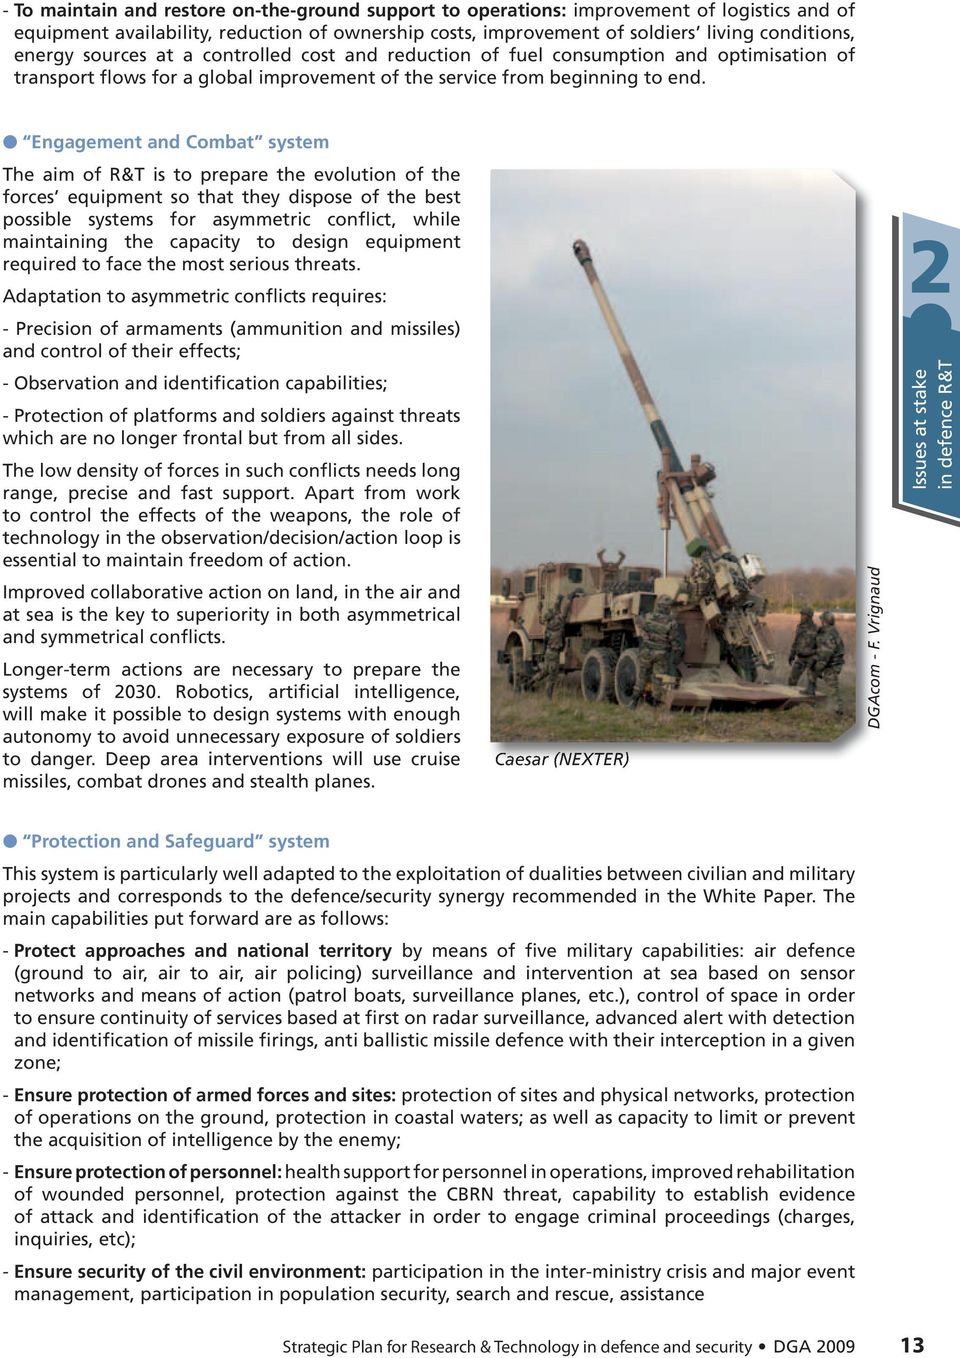 Engagement and combat system The aim of R&T is to prepare the evolution of the forces equipment so that they dispose of the best possible systems for asymmetric conflict, while maintaining the